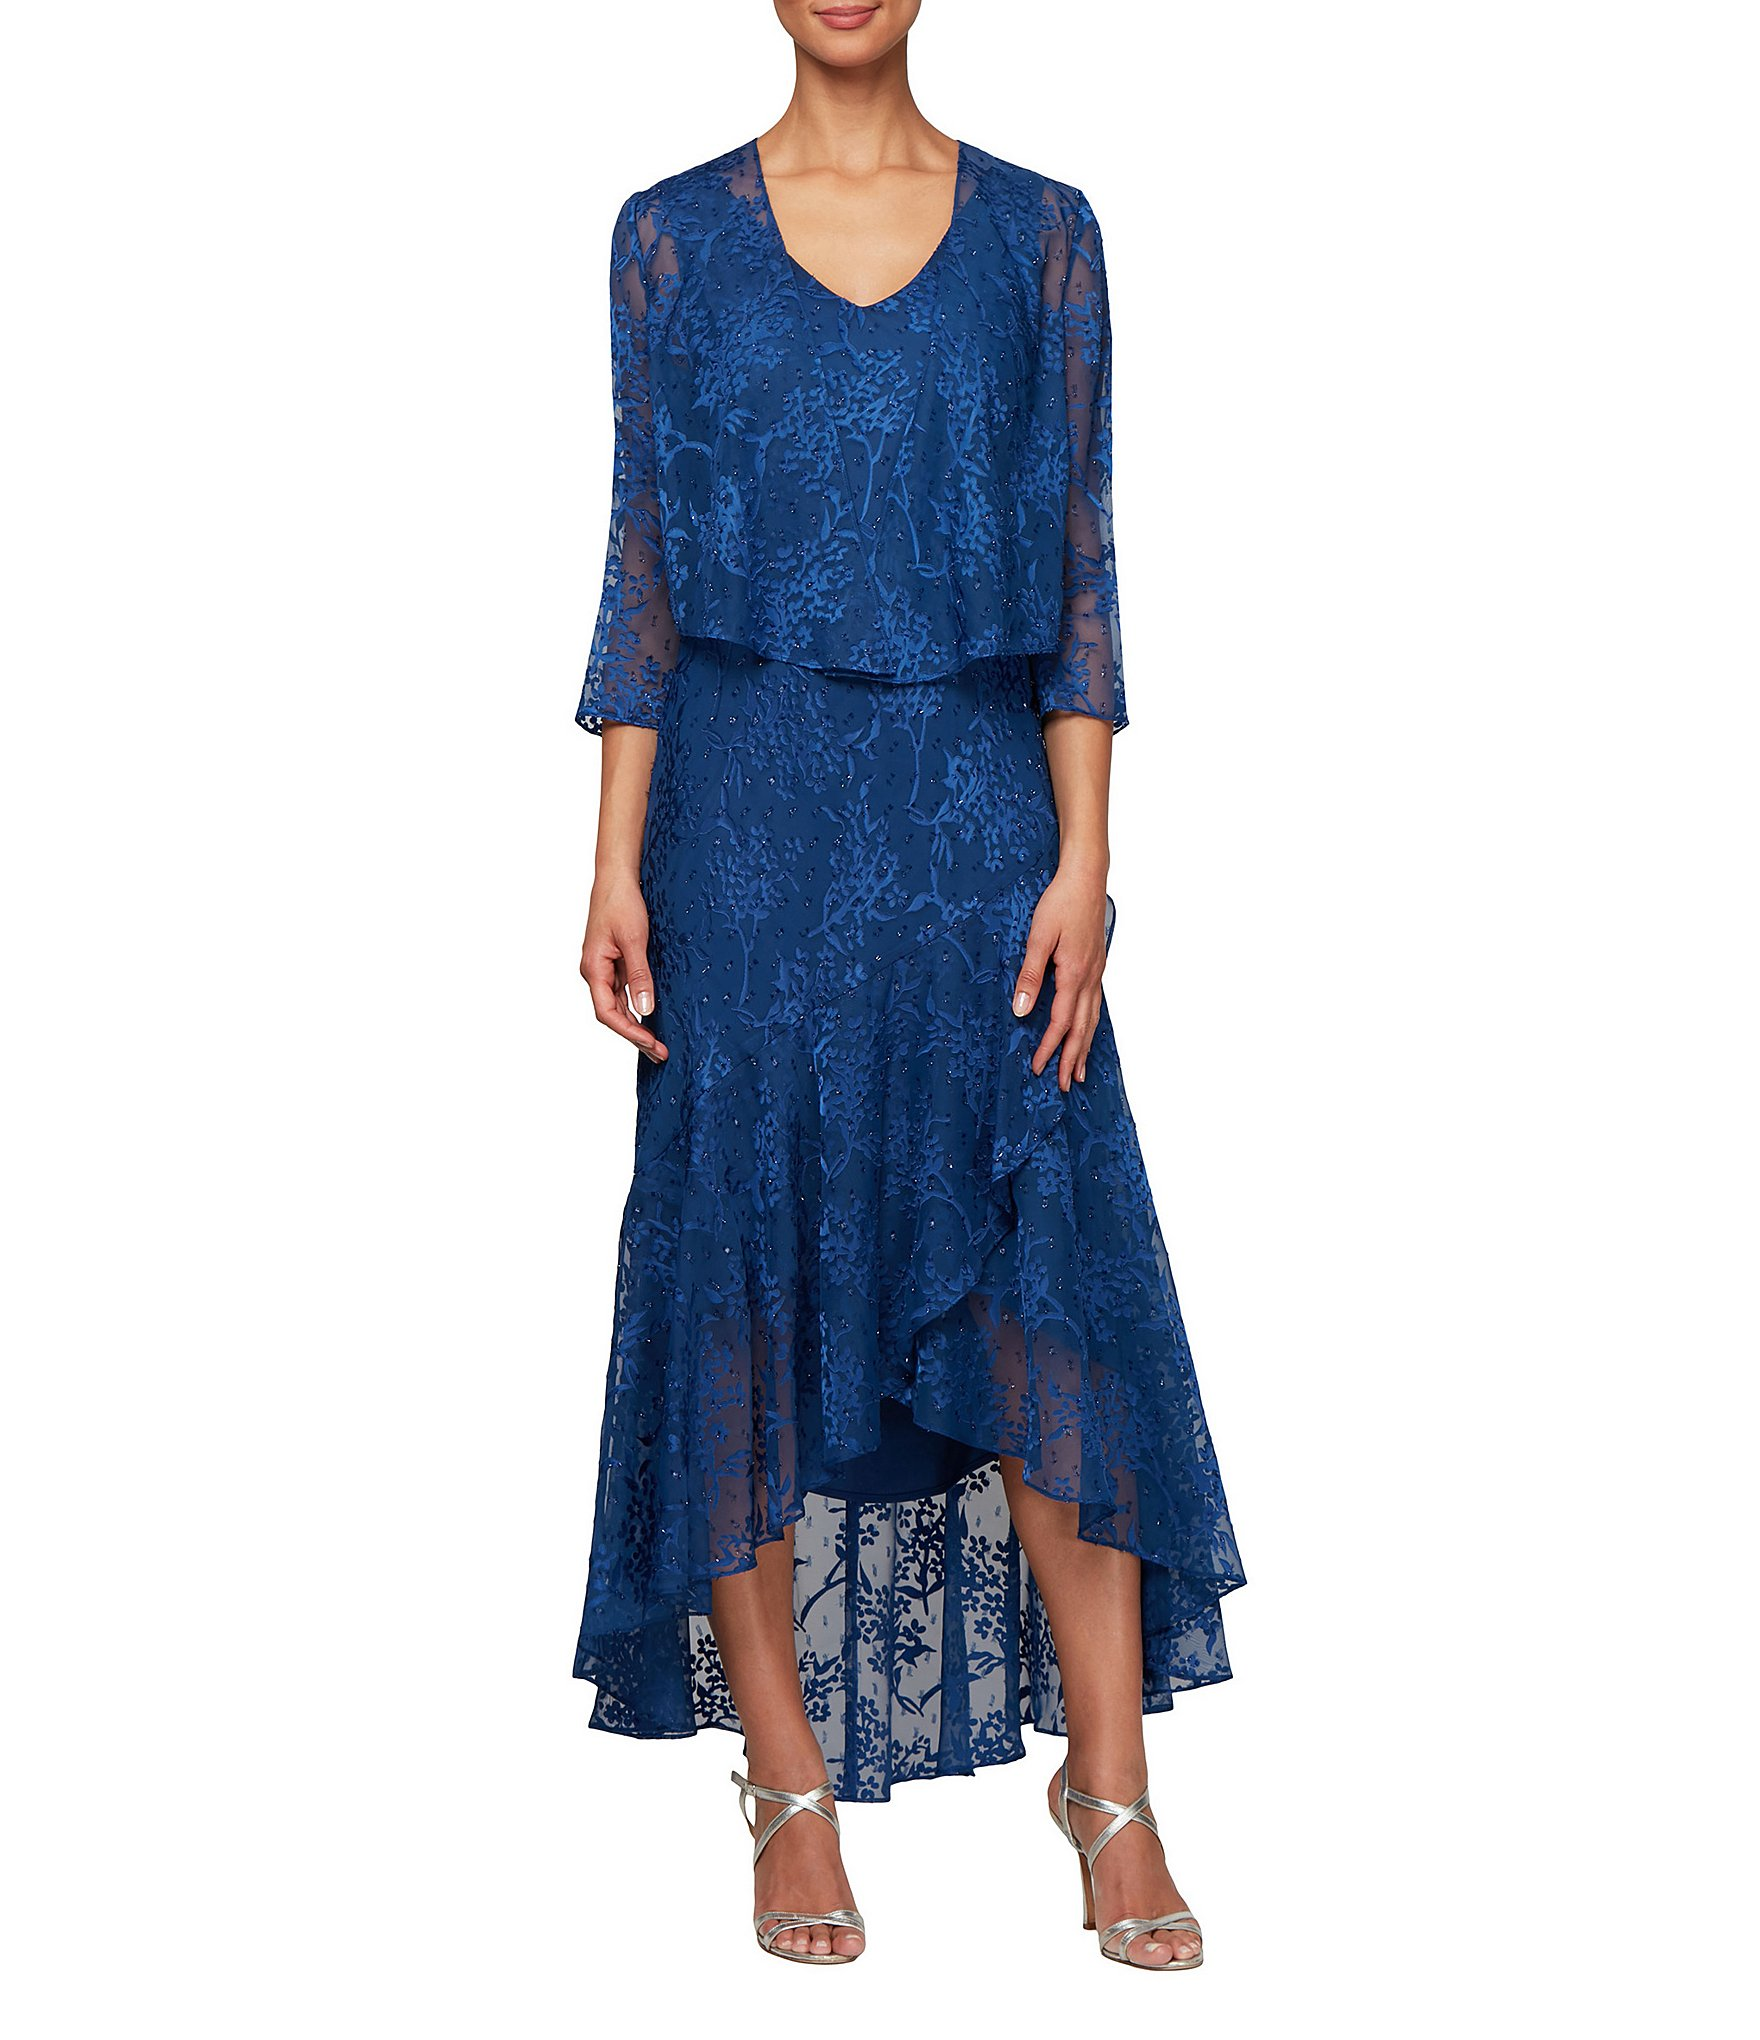 249351ba21f royal blue dress  Women s Clothing   Apparel